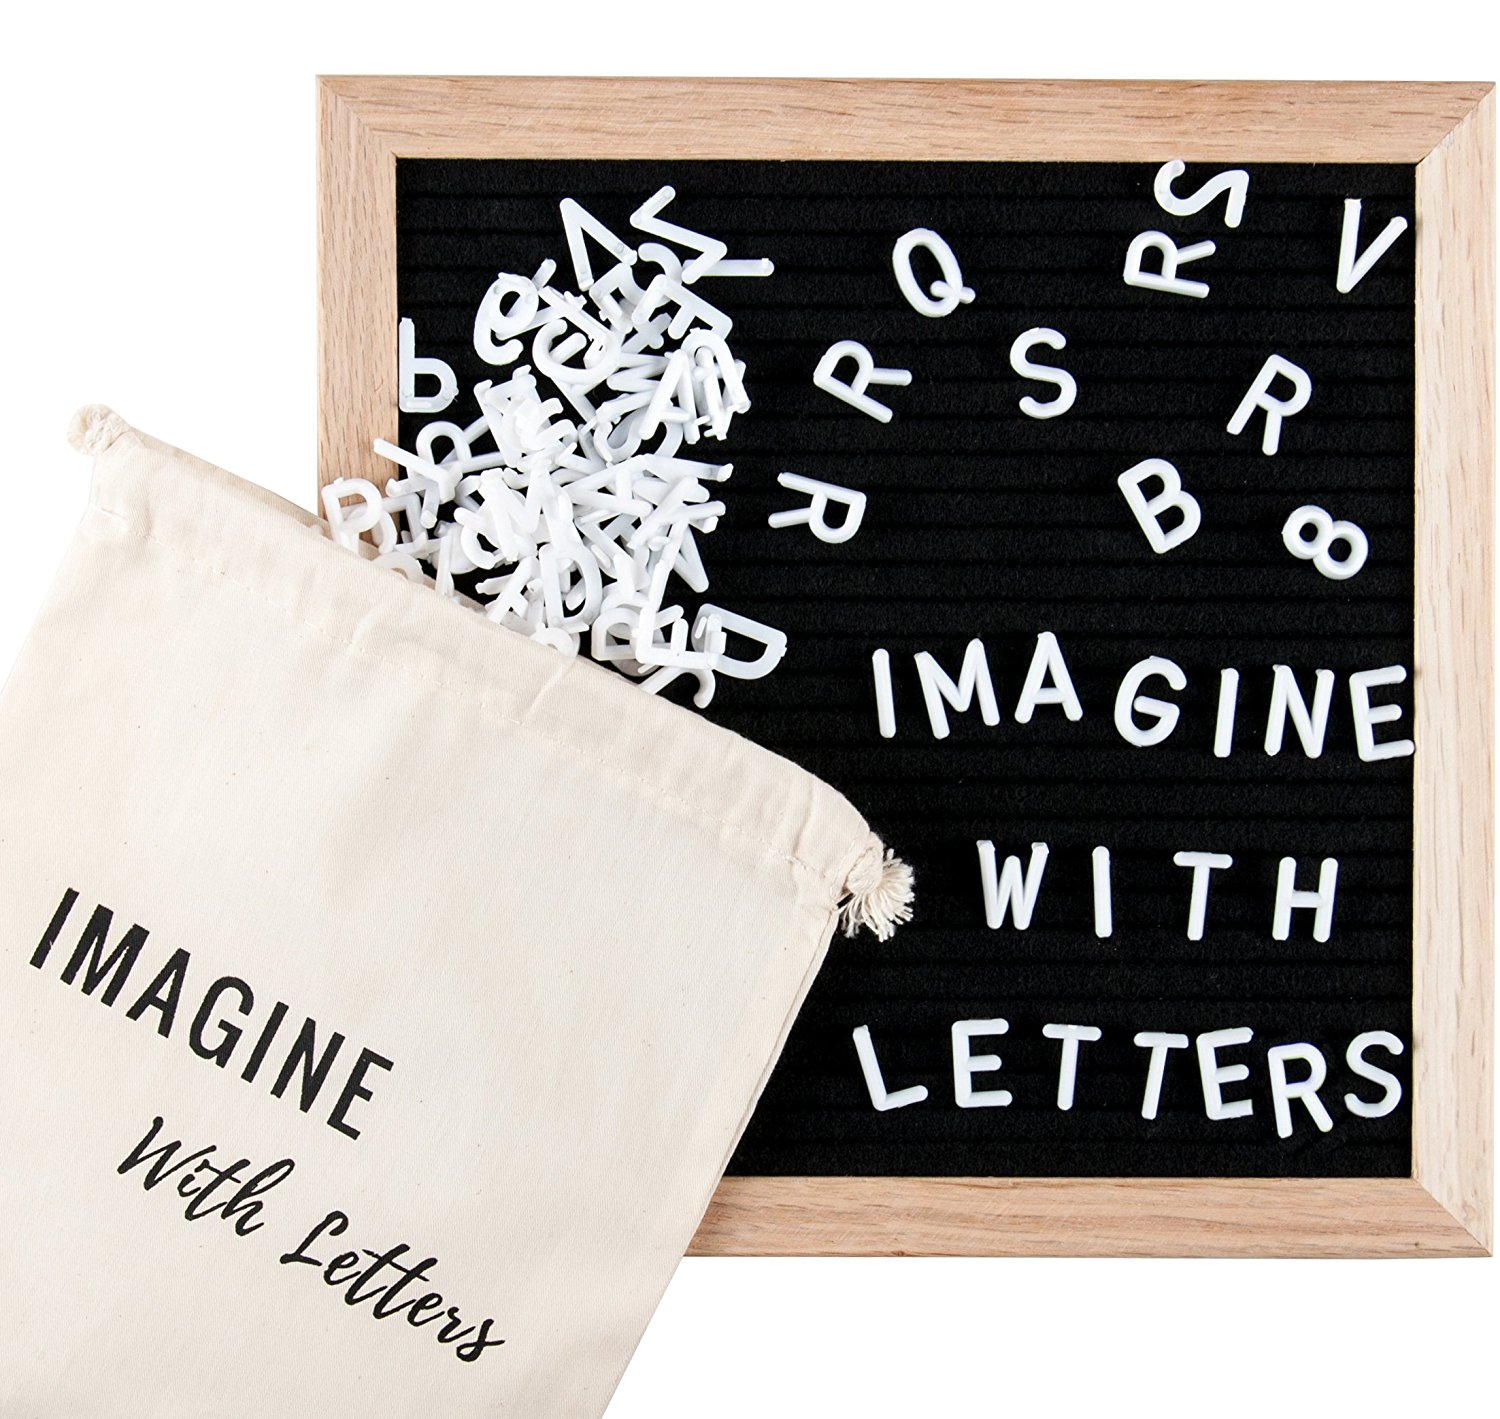 Black Felt Letter Board: 10x10 Inches. Wooden Letter Board over 600 Characters: Changeable White Letters,... by